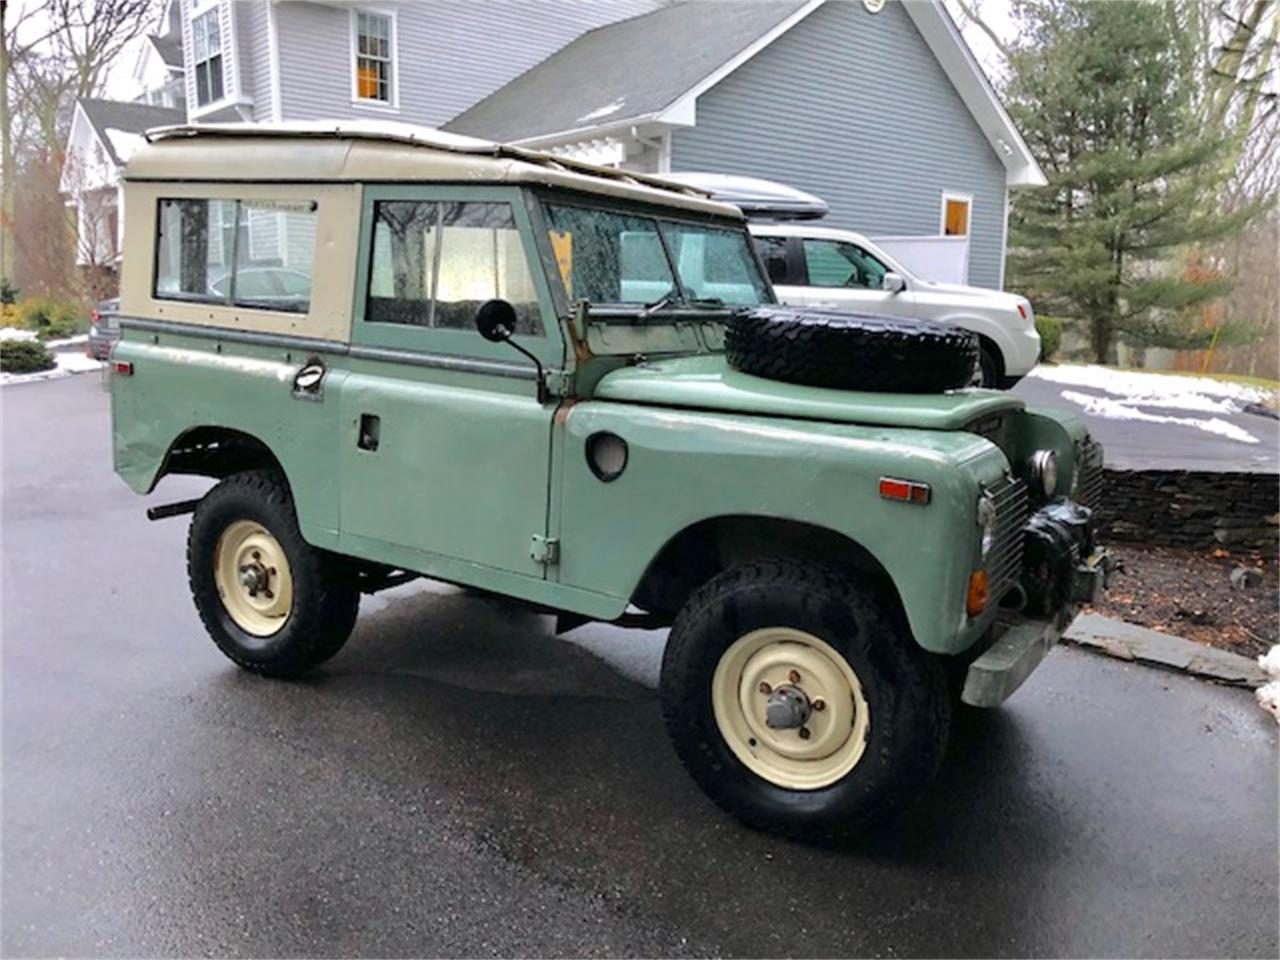 For Sale: 1973 Land Rover Series III in North Kingstown, Rhode Island